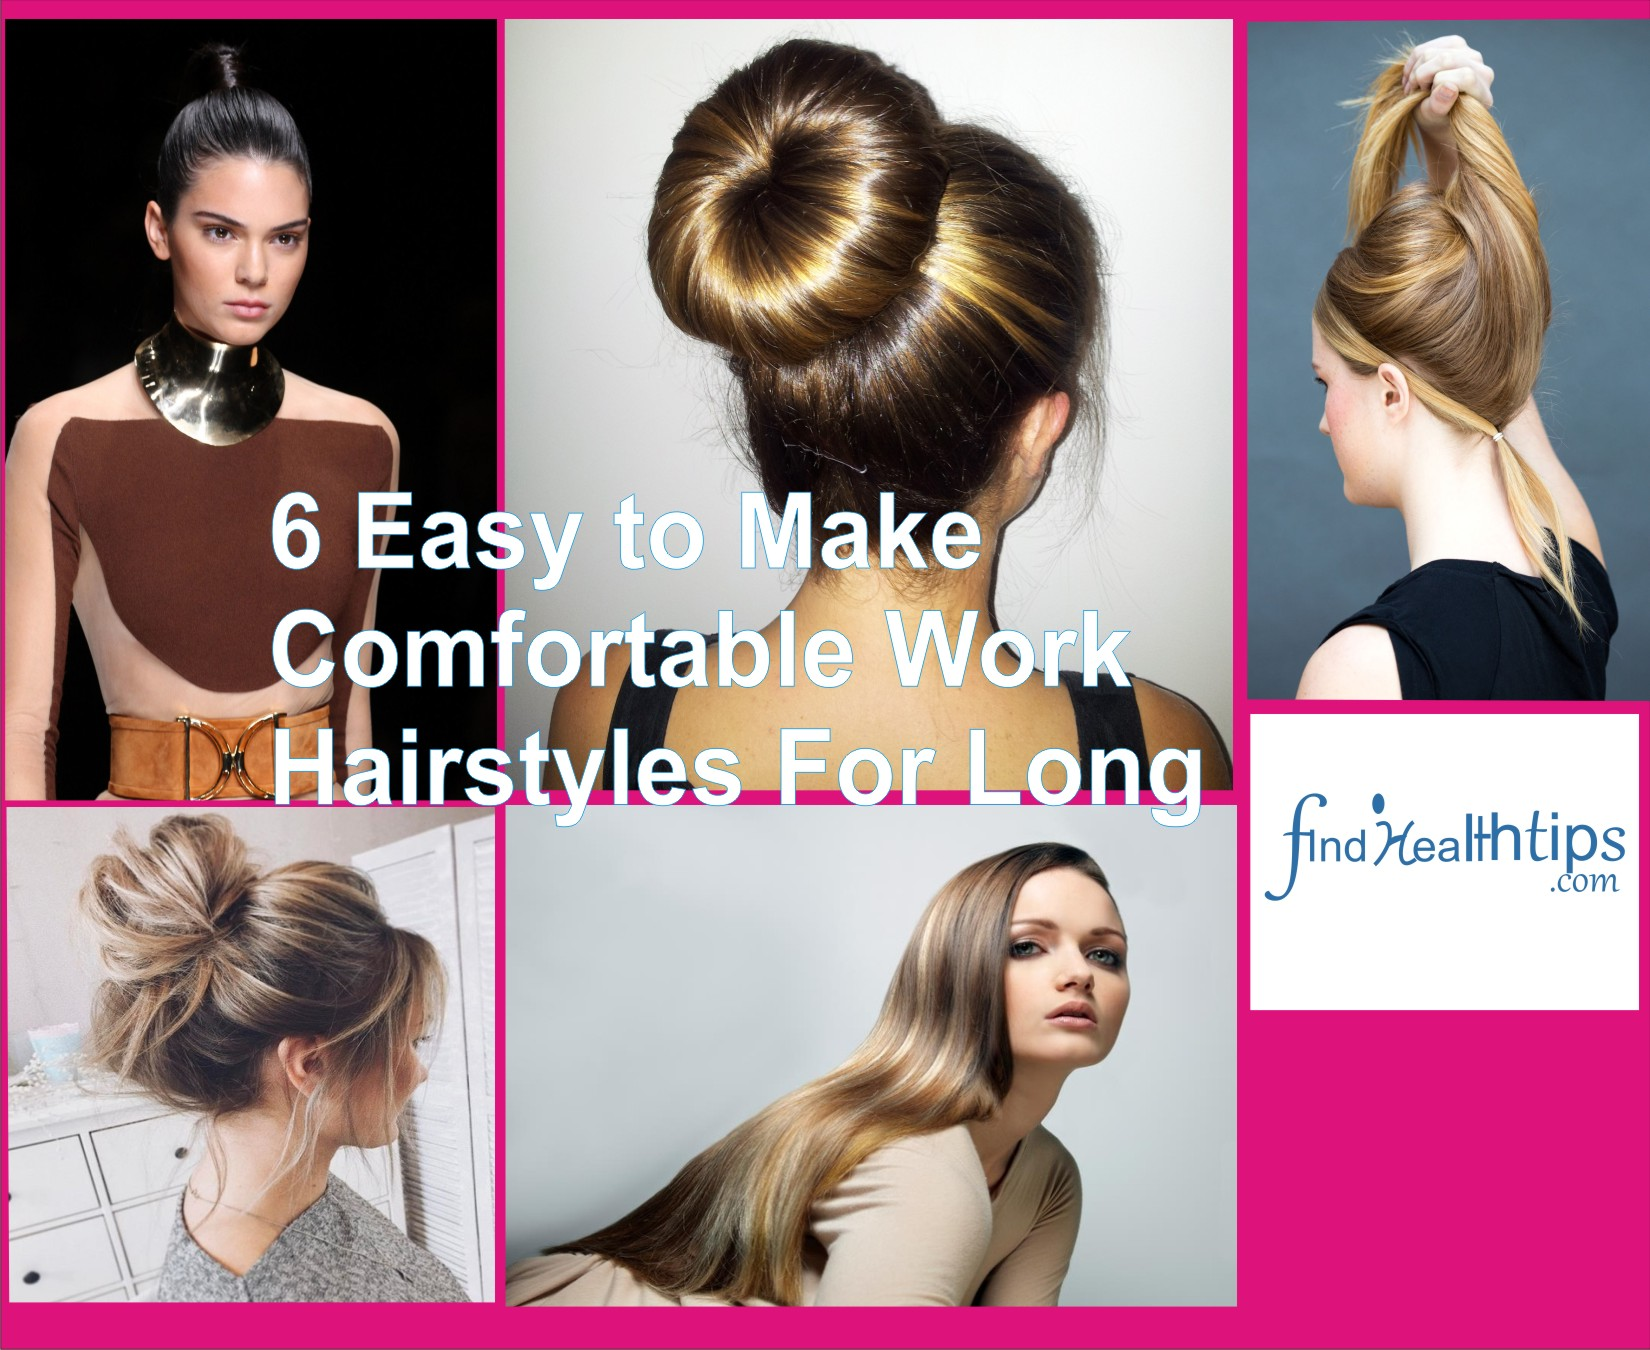 6 Easy to Make Comfortable Work Hairstyles For Long Hair That Rock